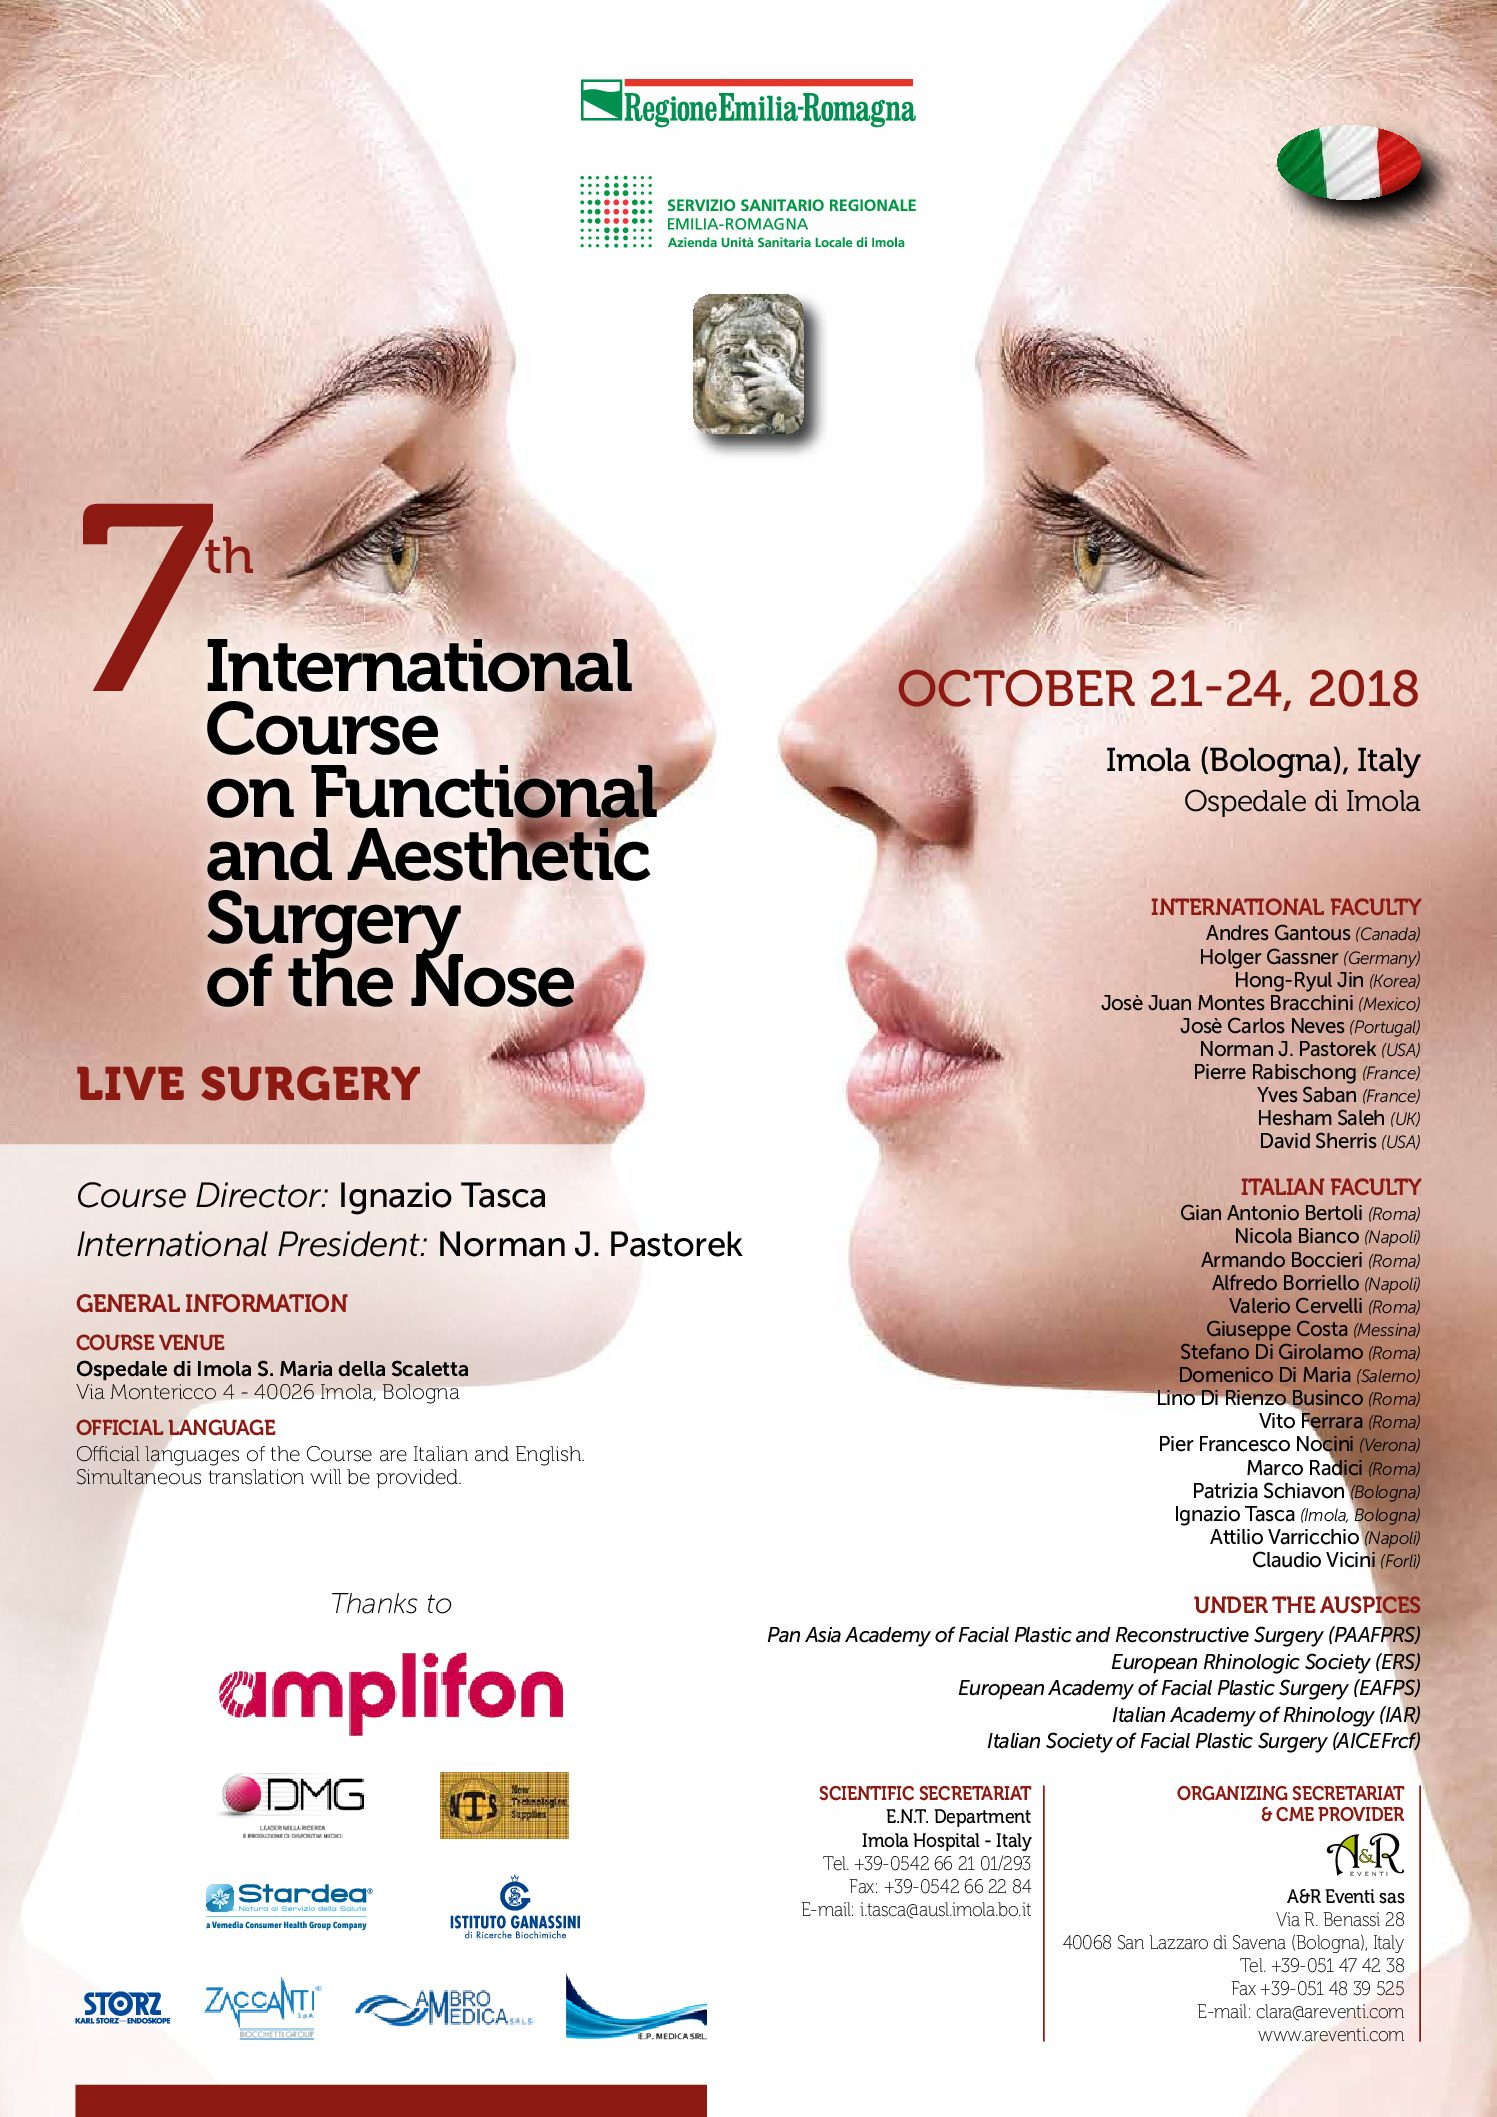 7th International Course on Fucntional and Esthetic Surgery of the Nose - Live Surgery